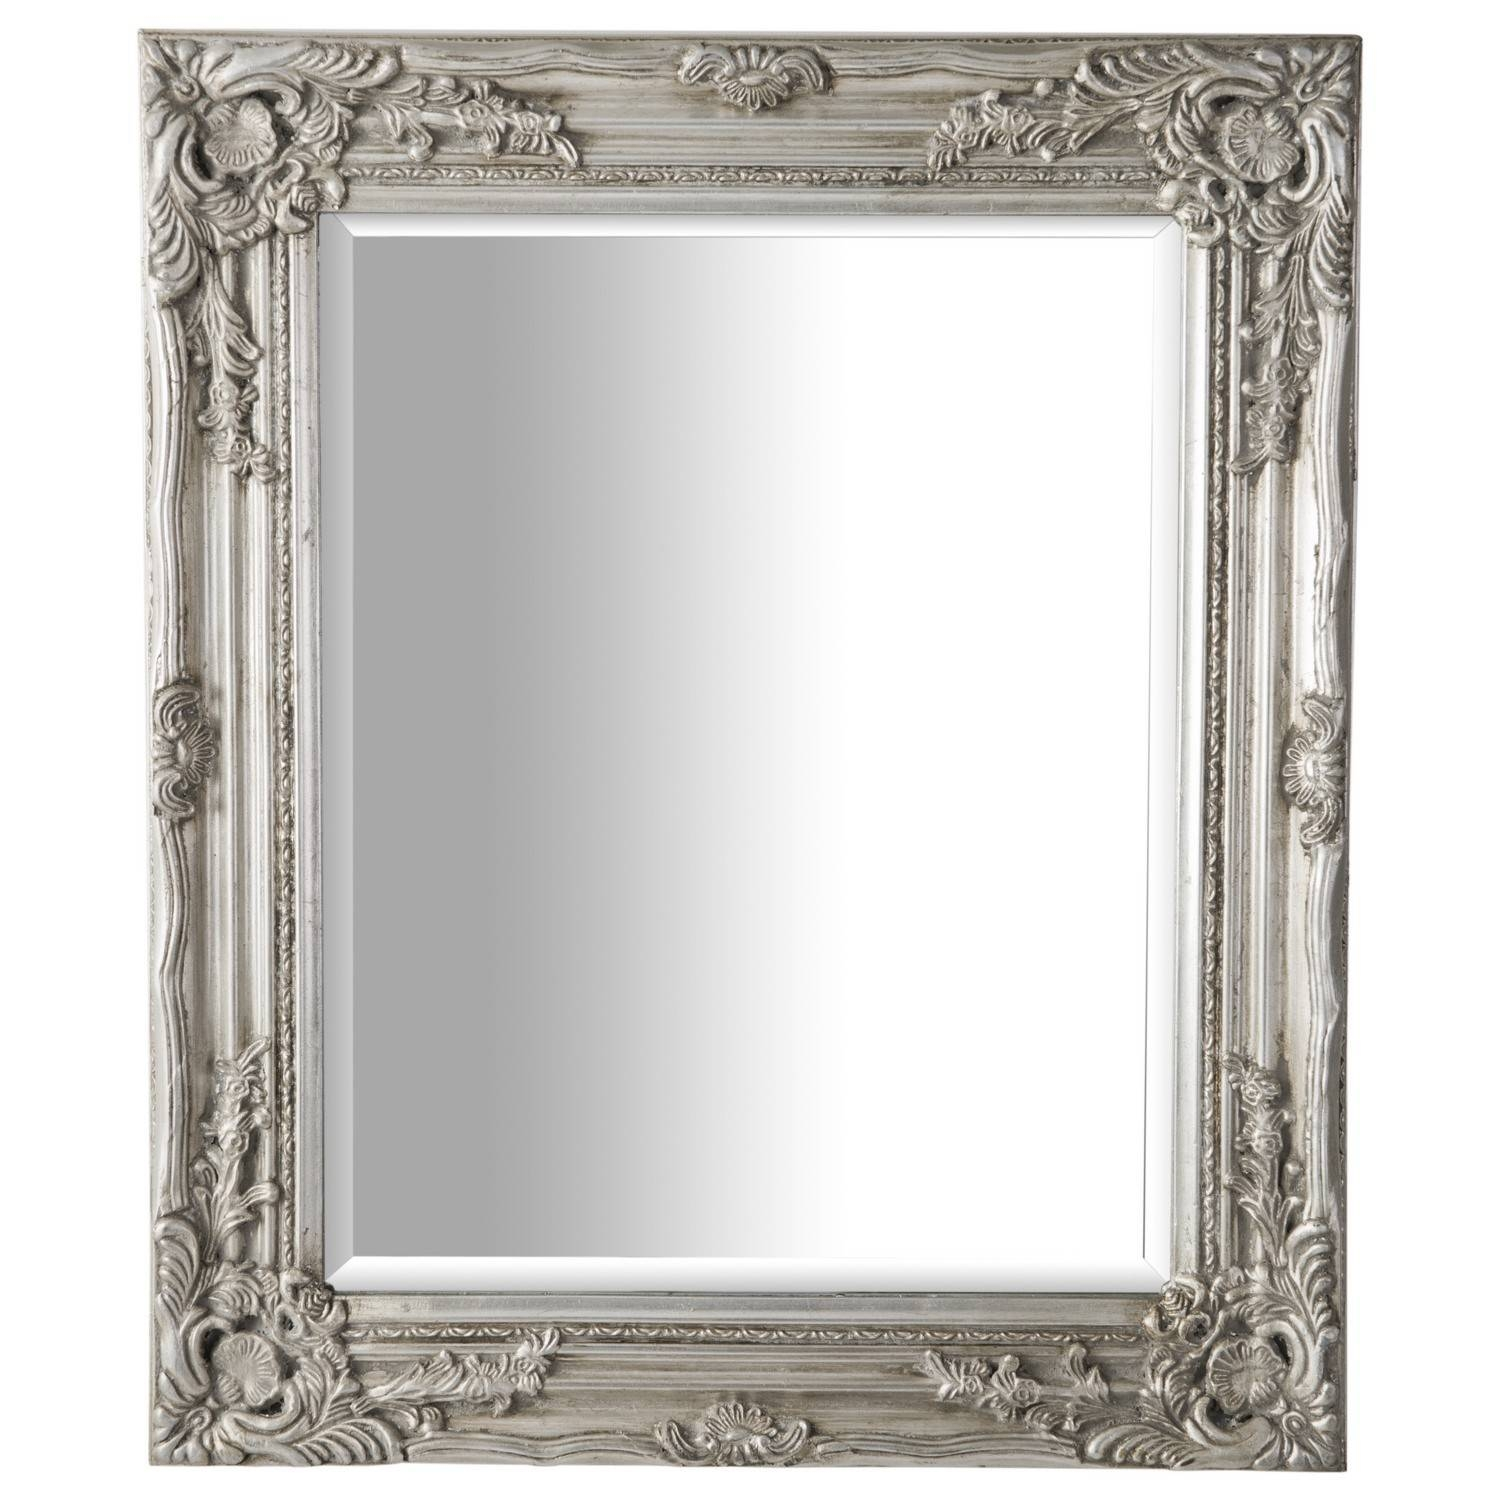 Popular Photo of Silver Ornate Wall Mirrors